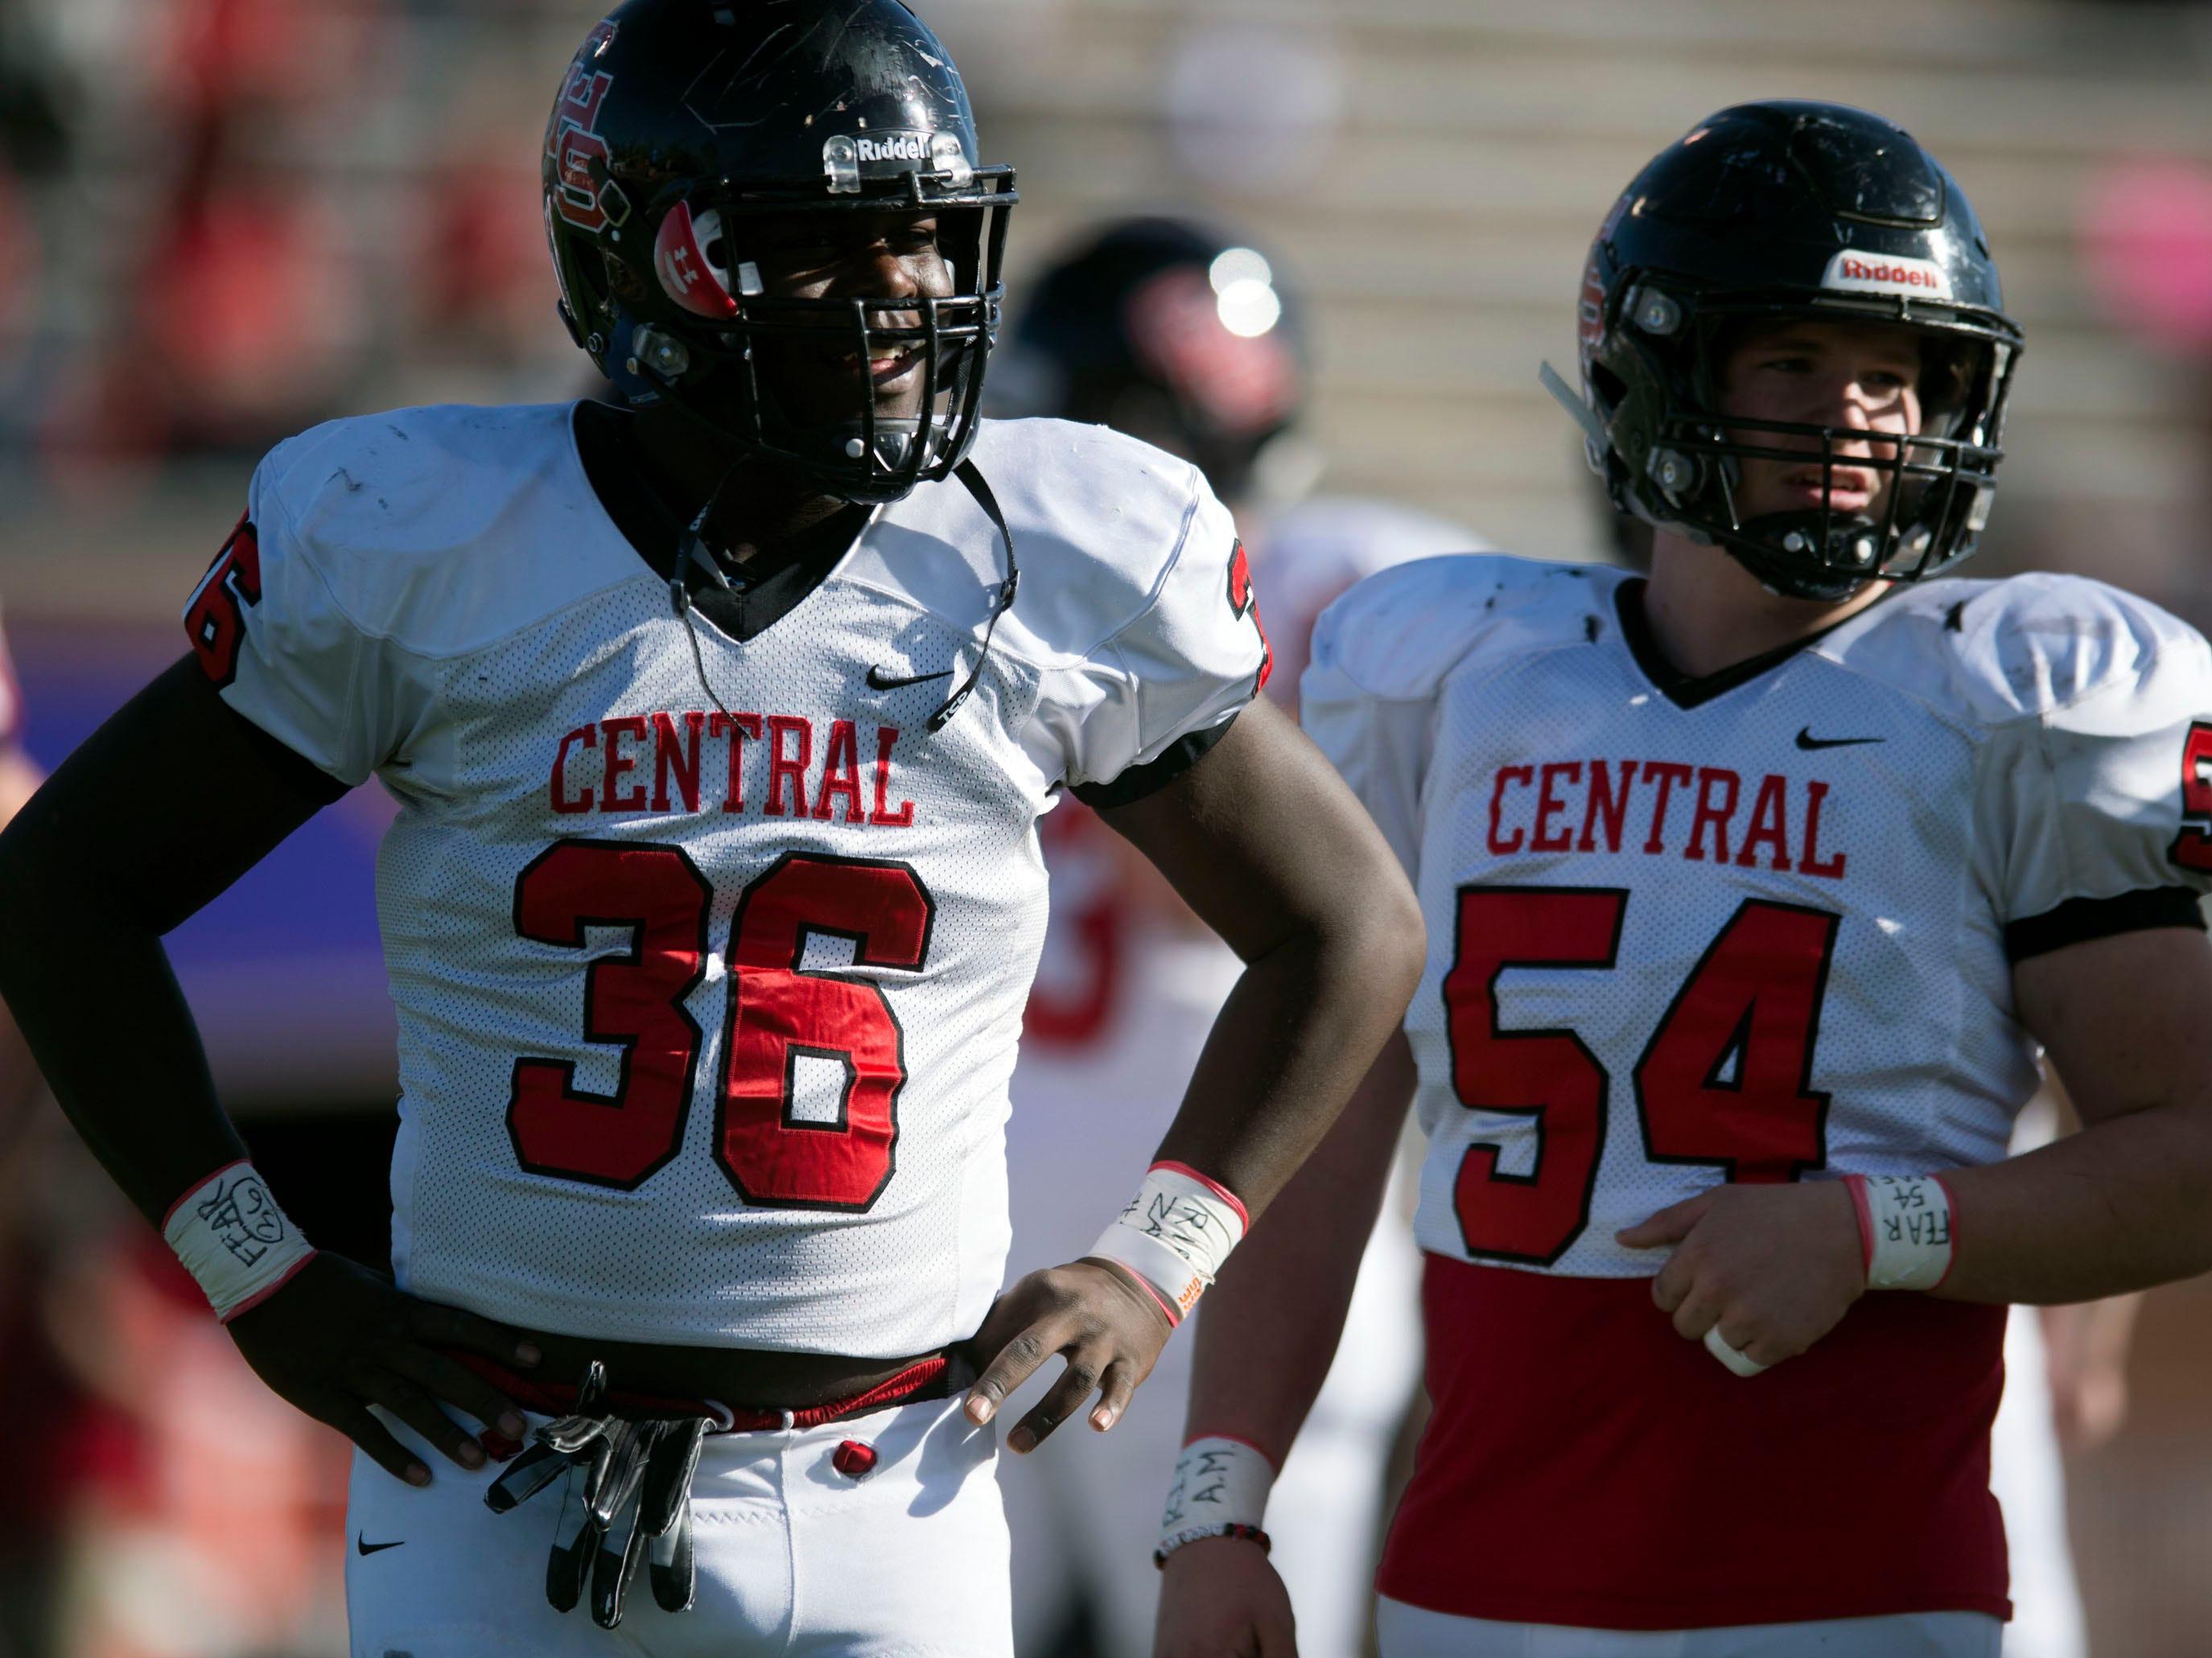 Knoxville Central's Deonte Middleton (36) and Noah Parker (54) before the start of the game against Henry County in the Class 5A BlueCross Bowl at Tucker Stadium on Sunday, December 2, 2018.